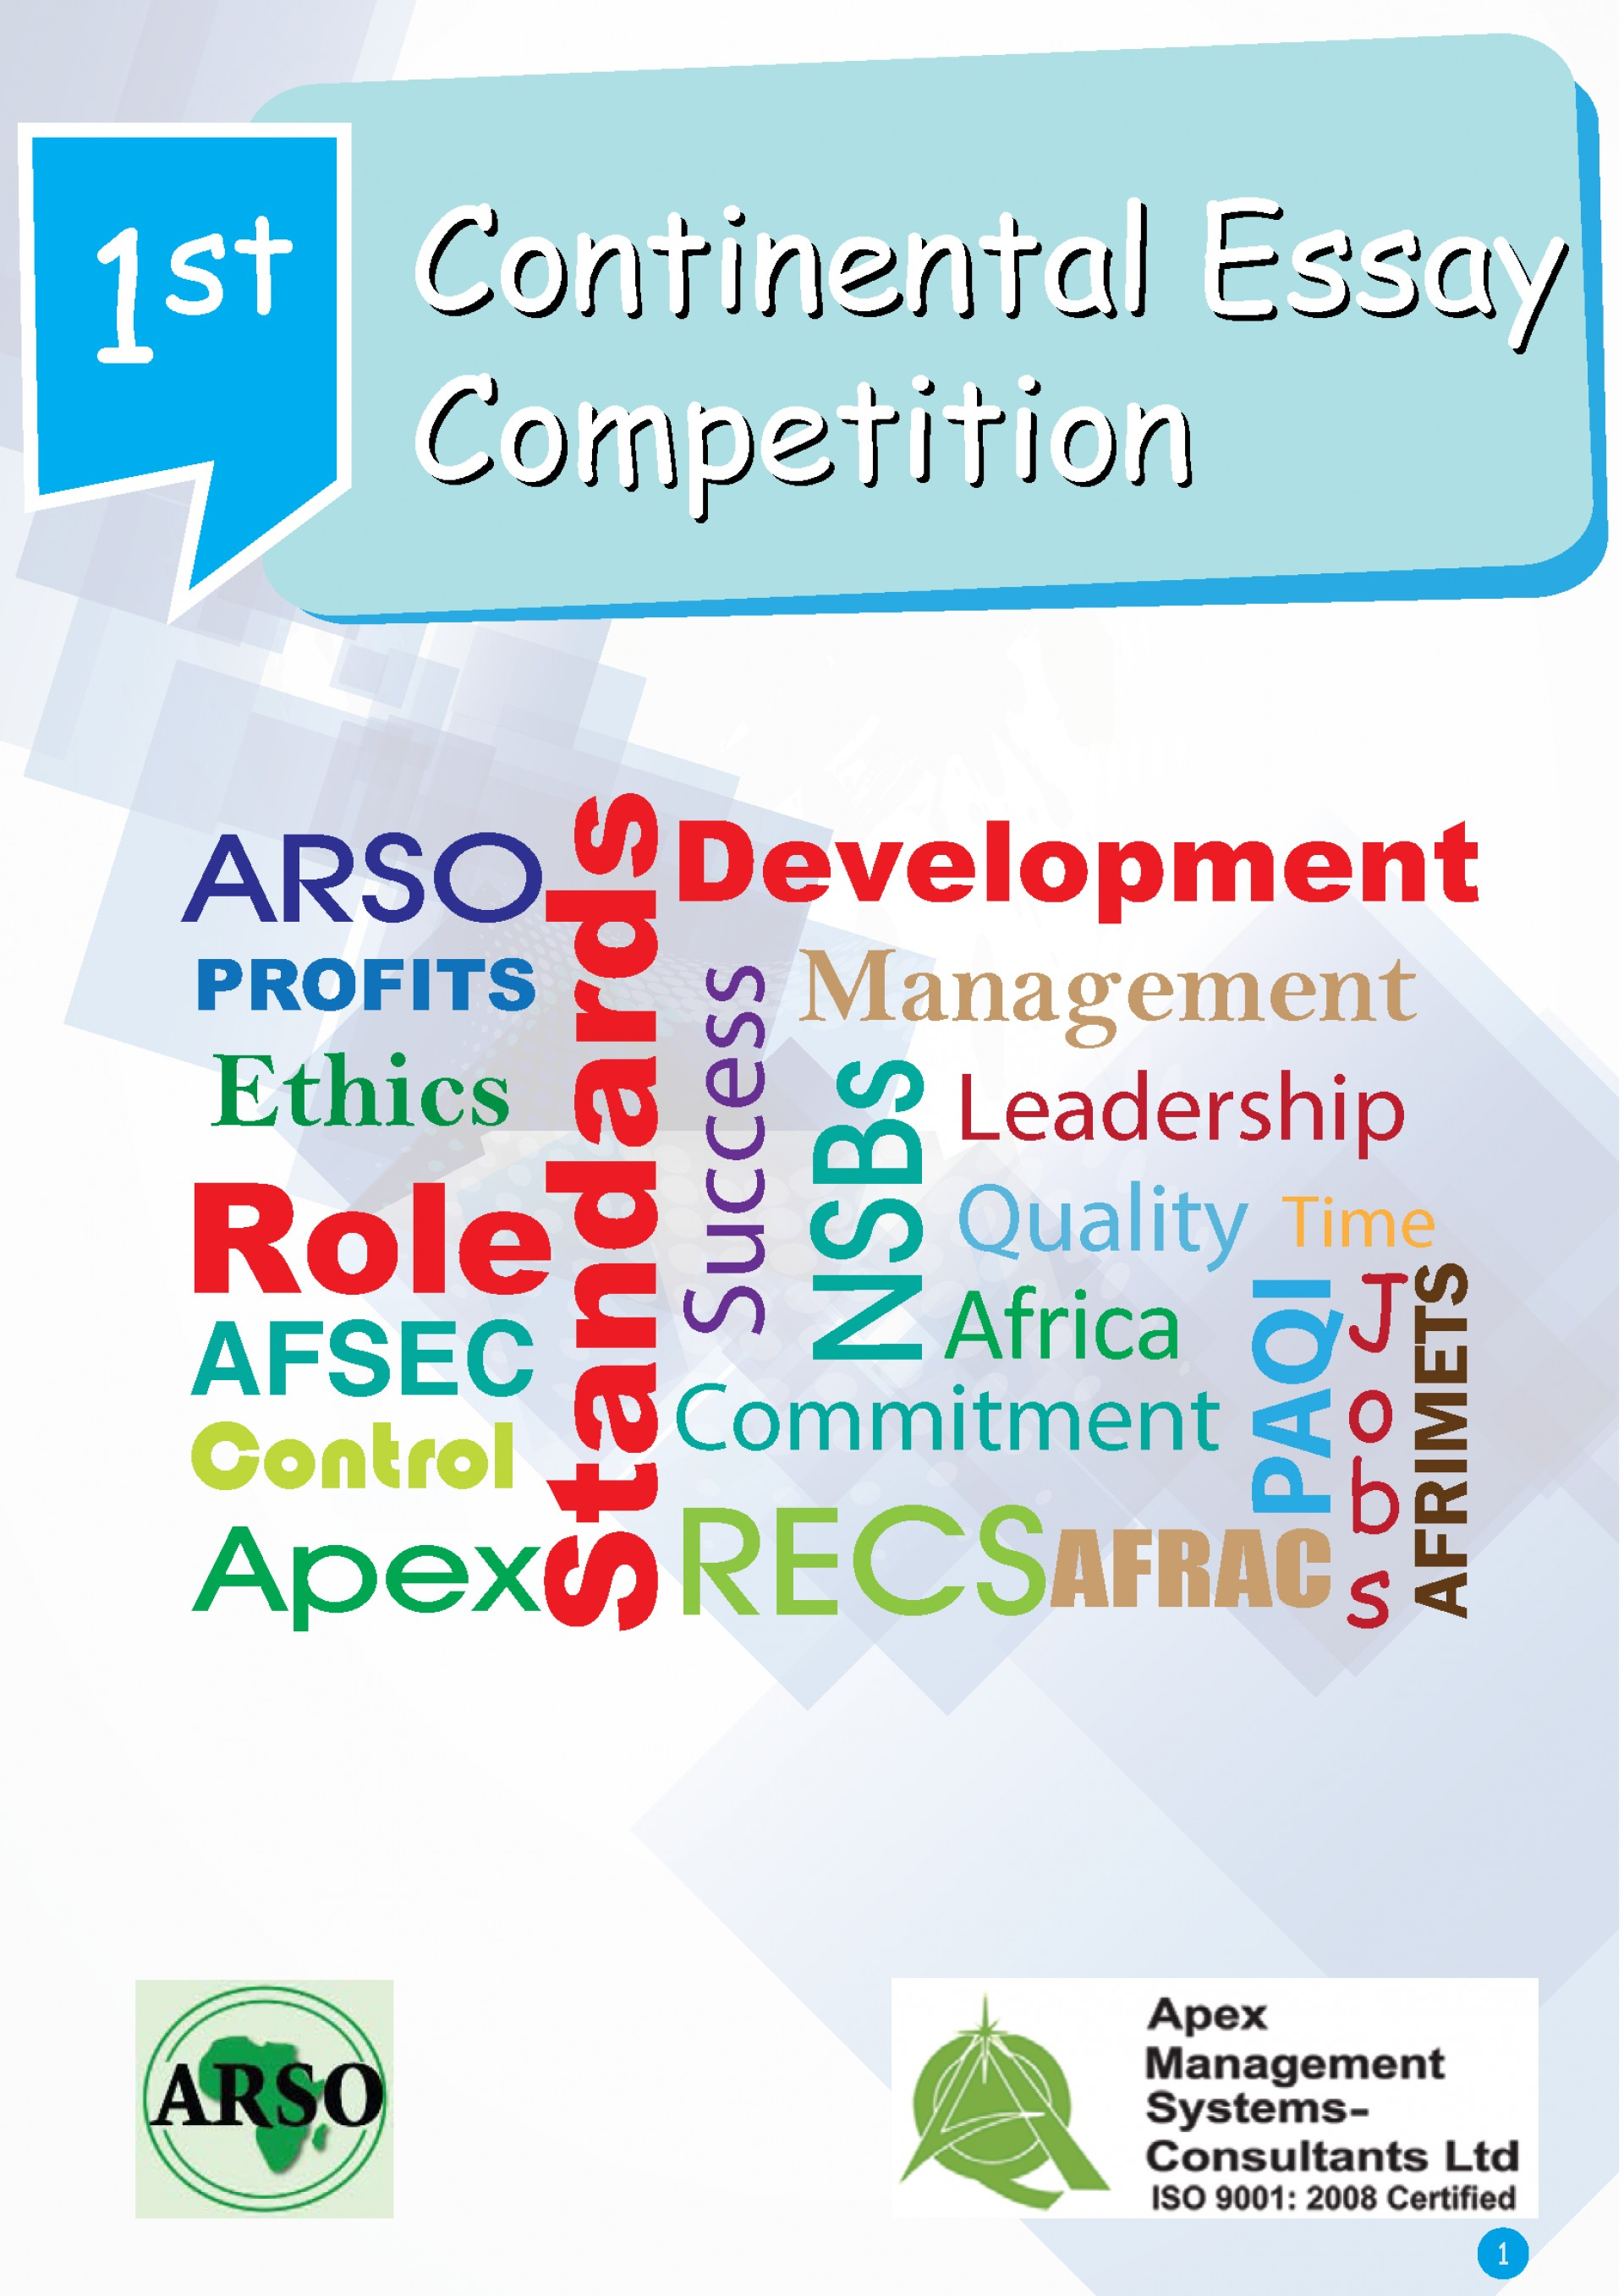 014 Arso Essay Competition Example Imposing Contests 2014 Maryknoll Contest Winners 1920